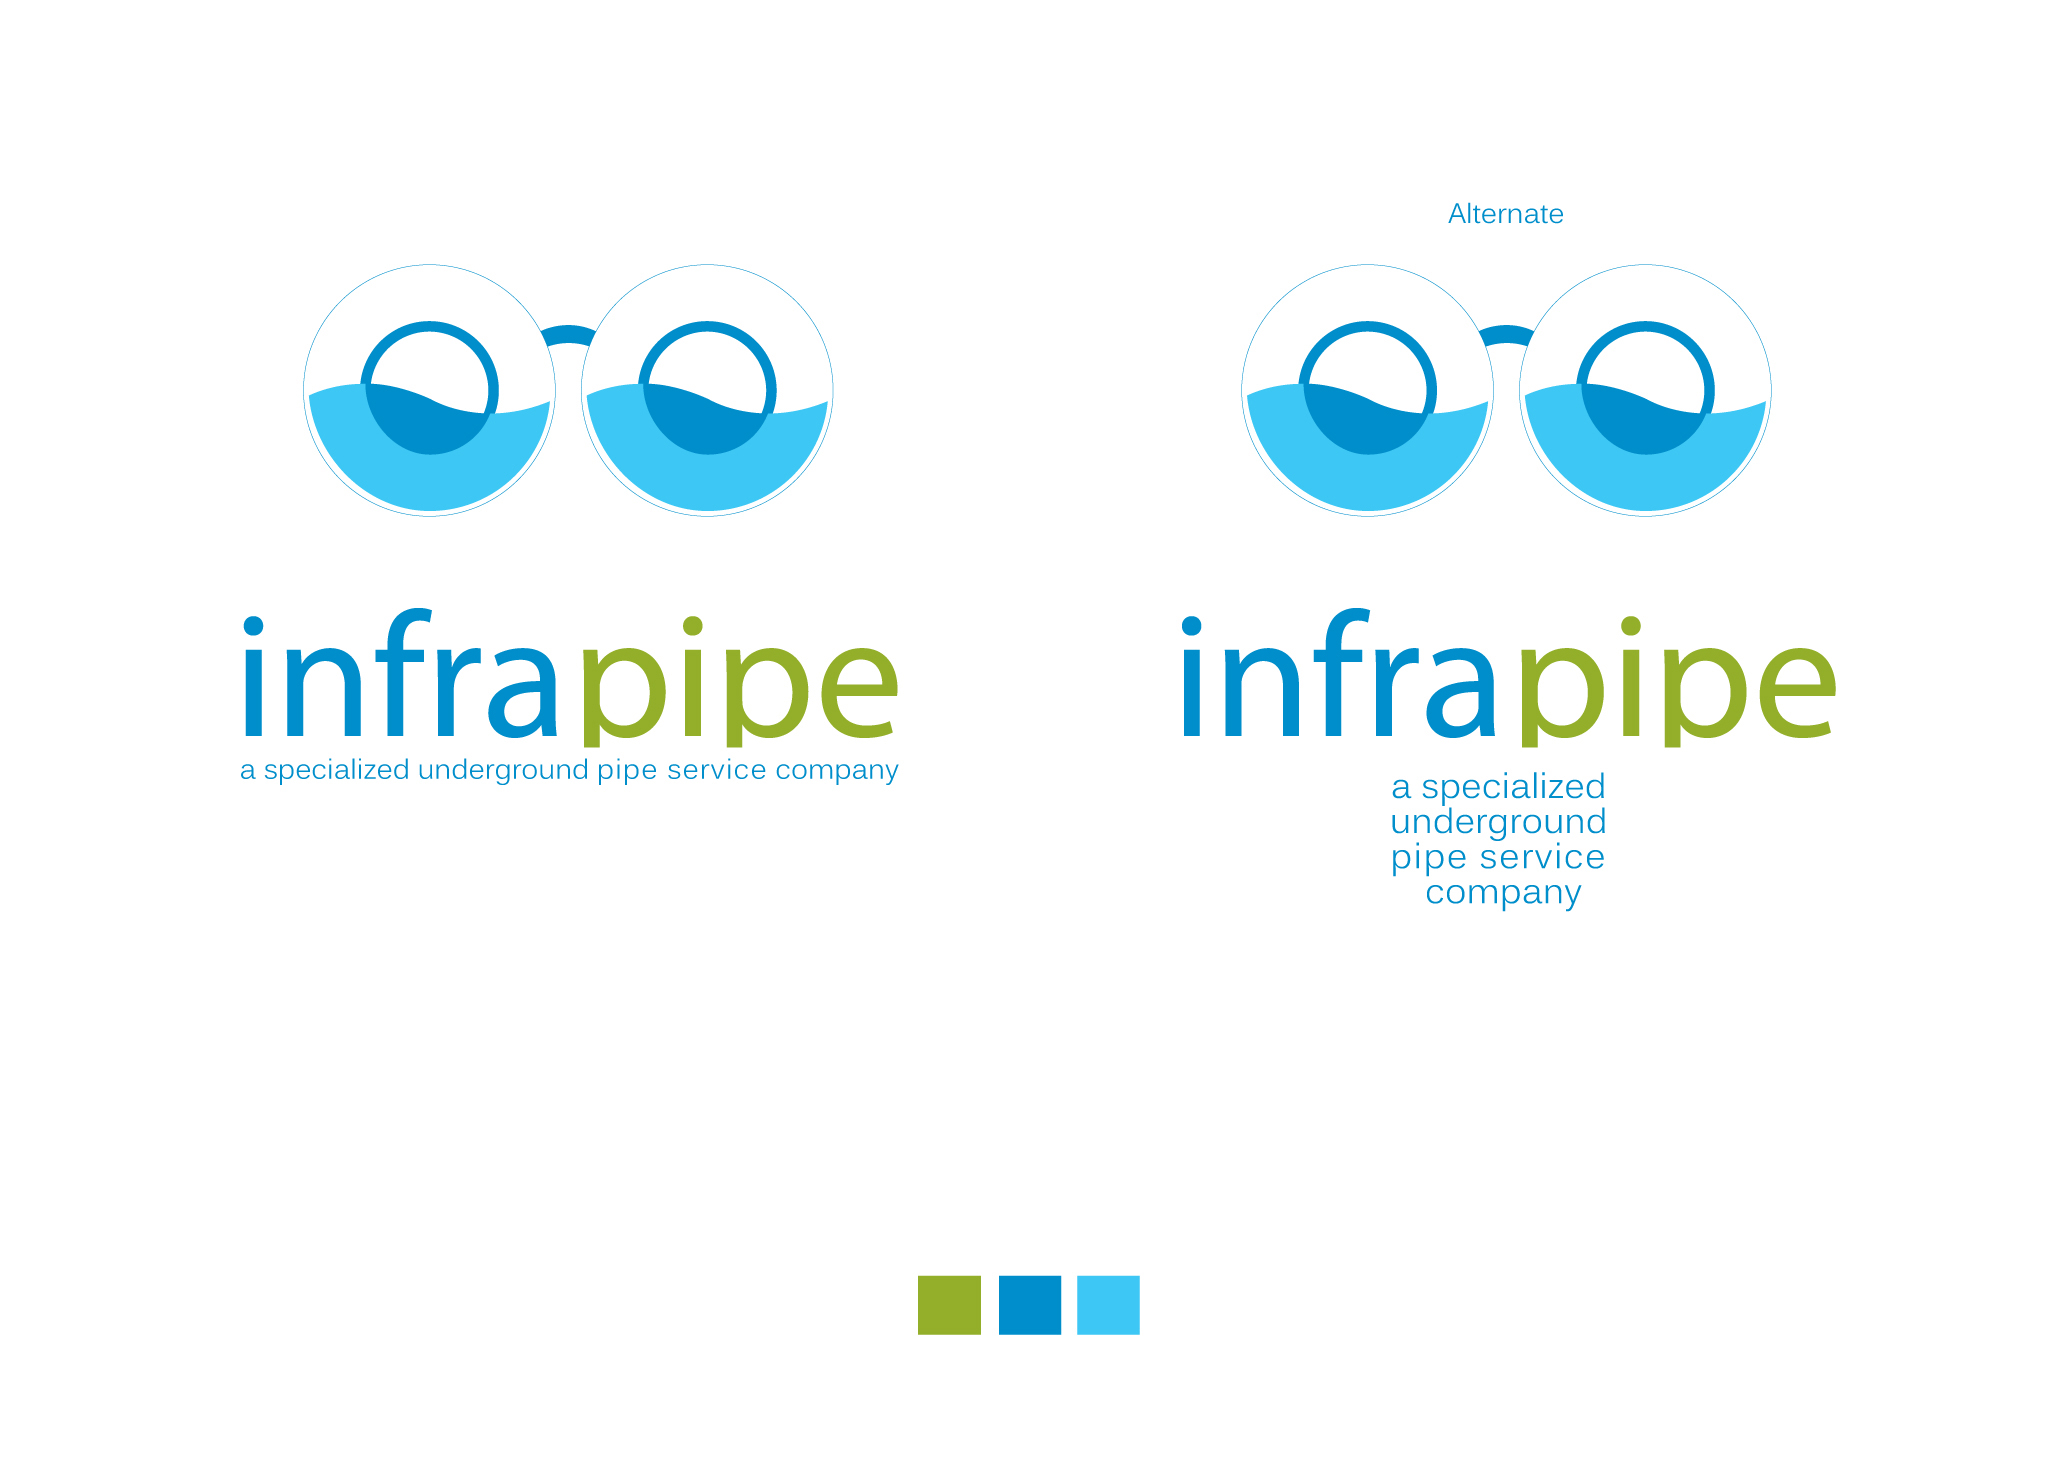 Logo Design by Alexandros Konstantinou - Entry No. 134 in the Logo Design Contest Inspiring Logo Design for Infrapipe.